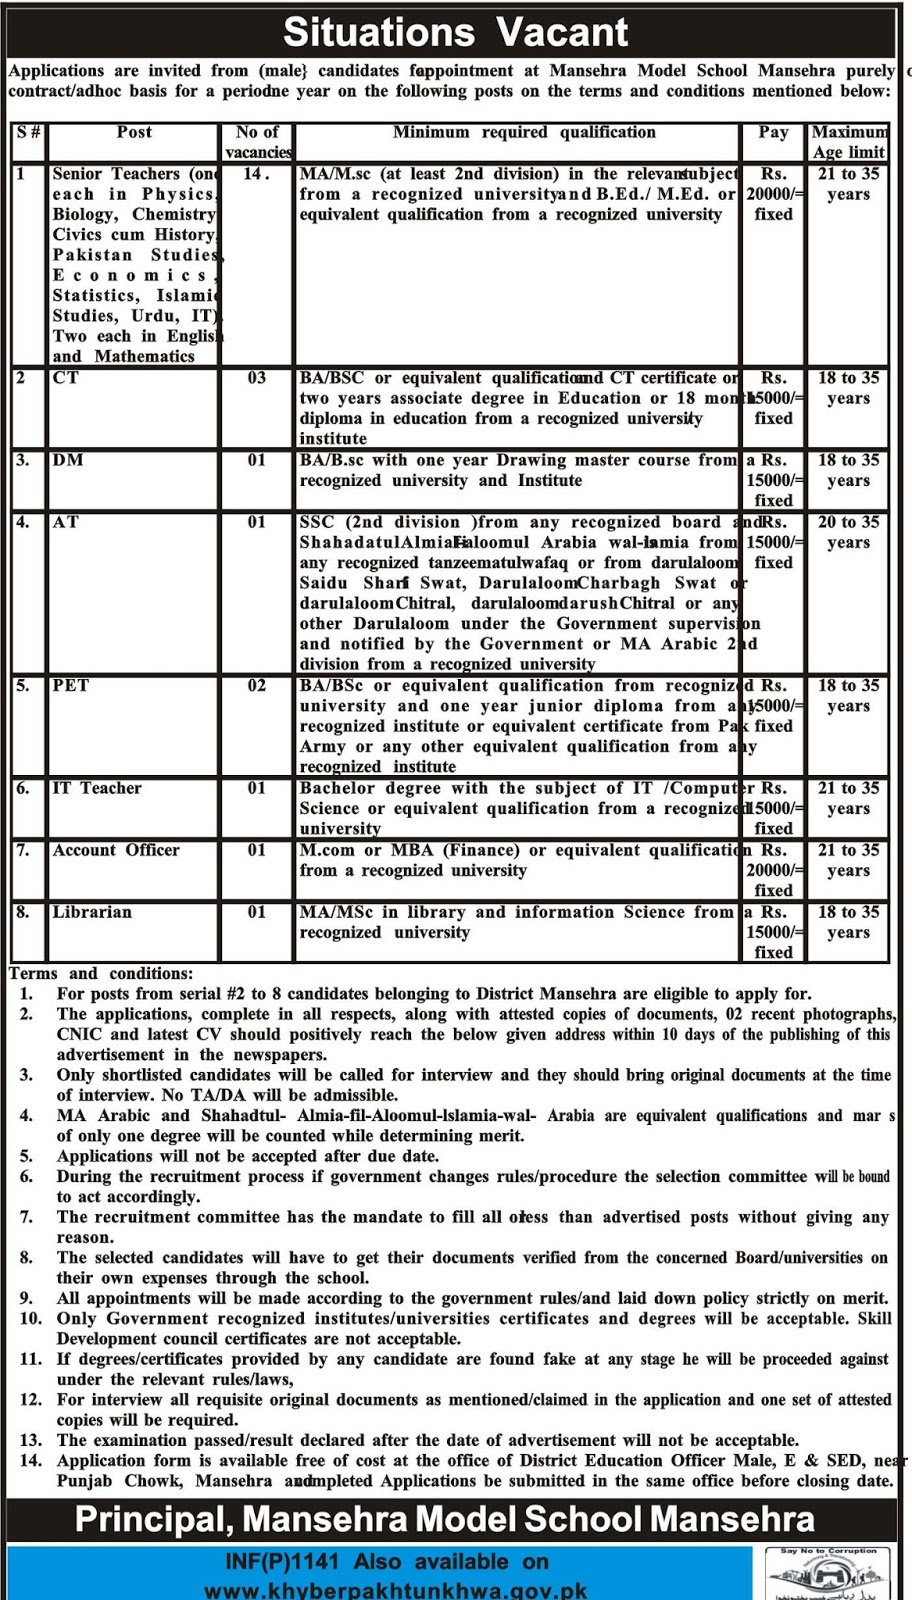 Jobs in Mansehra Model School Mansehra